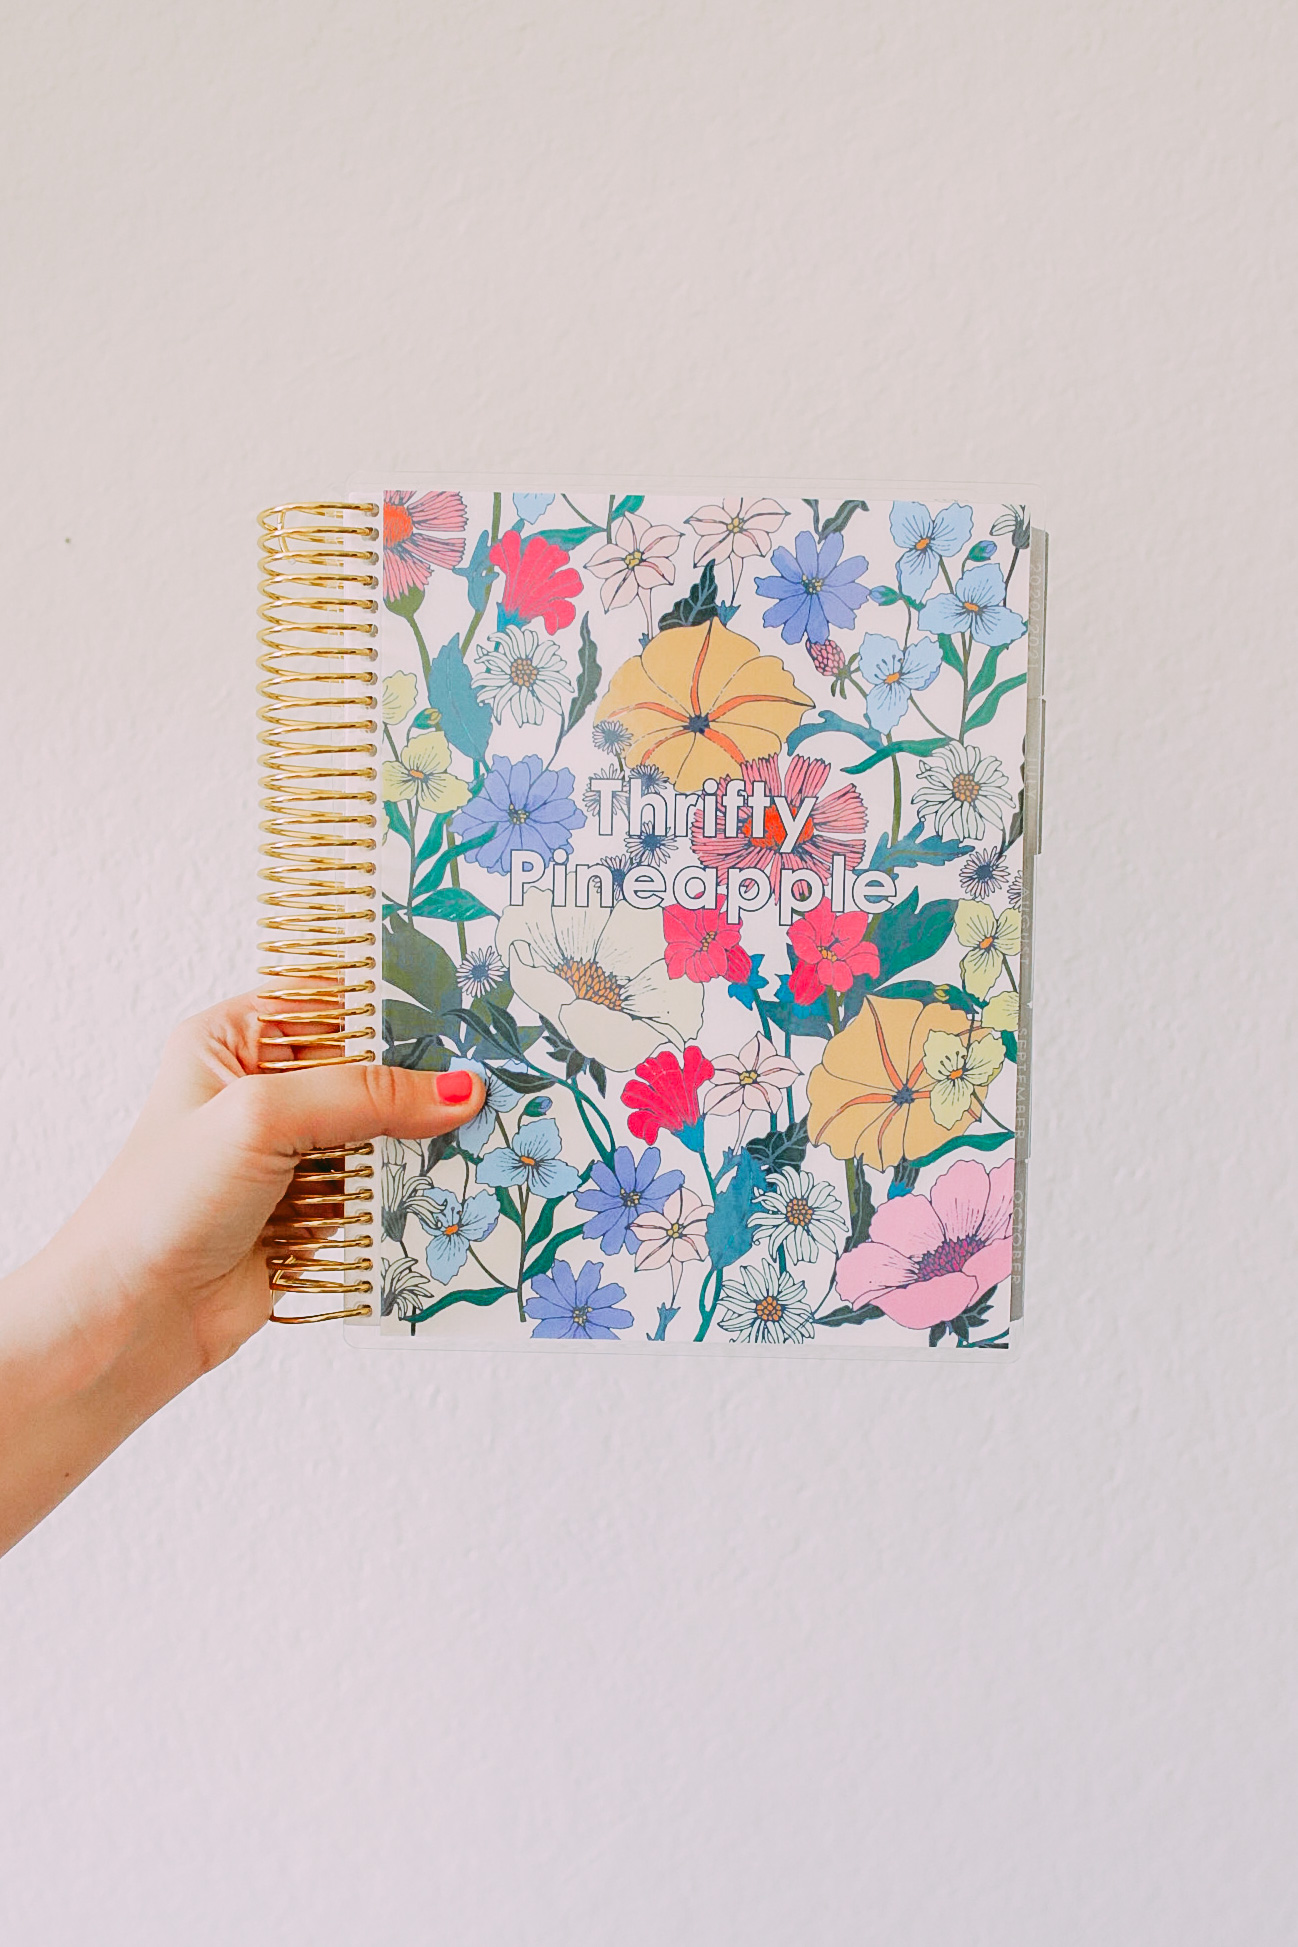 LAUNCH DAY: Erin Condren 2020-2021 LifePlanner + GIVEAWAY